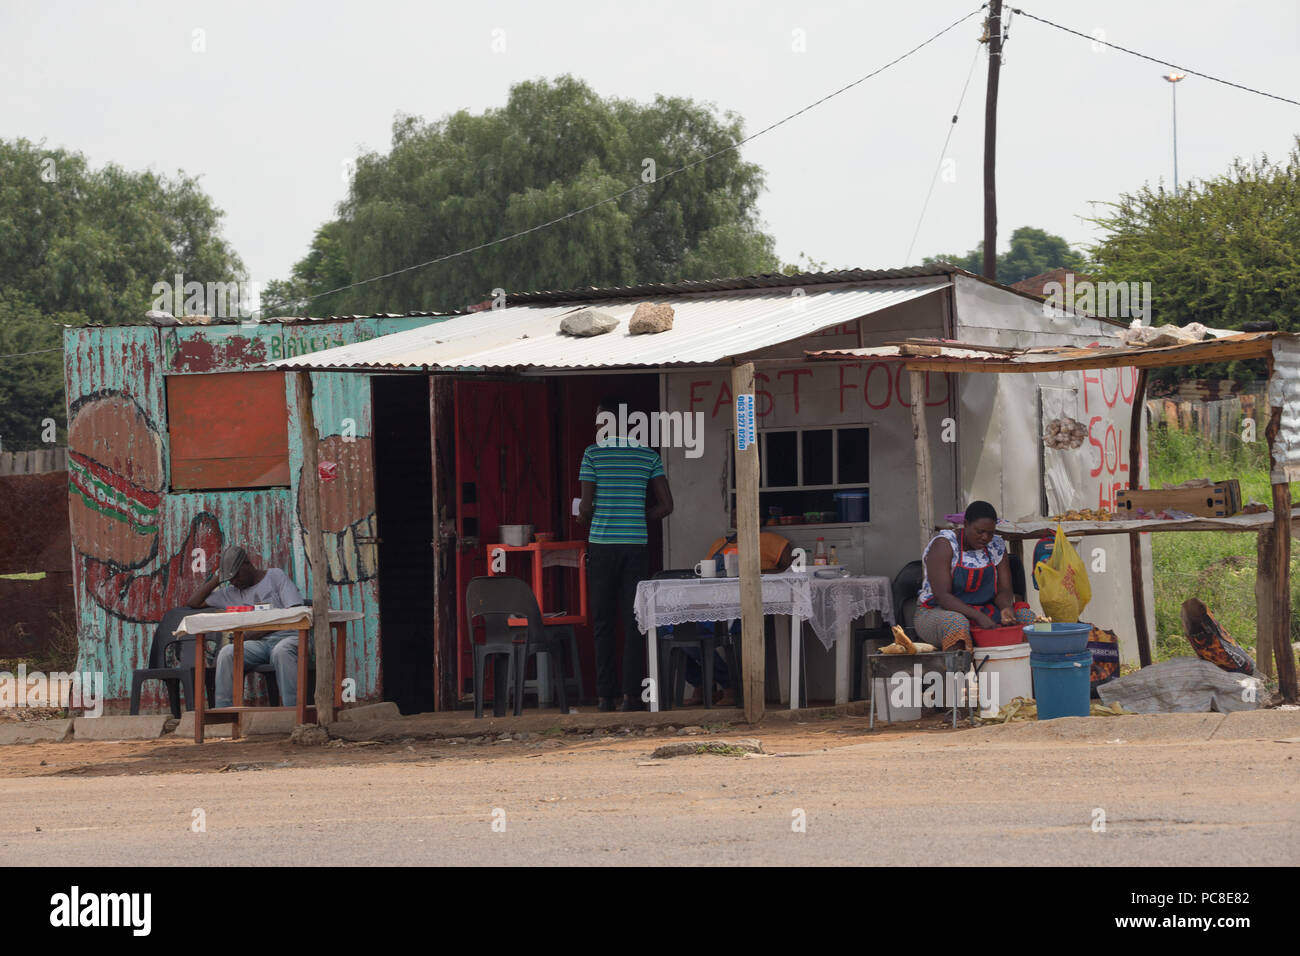 Fast food rural roadside eating place outside Johannesburg, Gauteng, South Africa - Stock Image